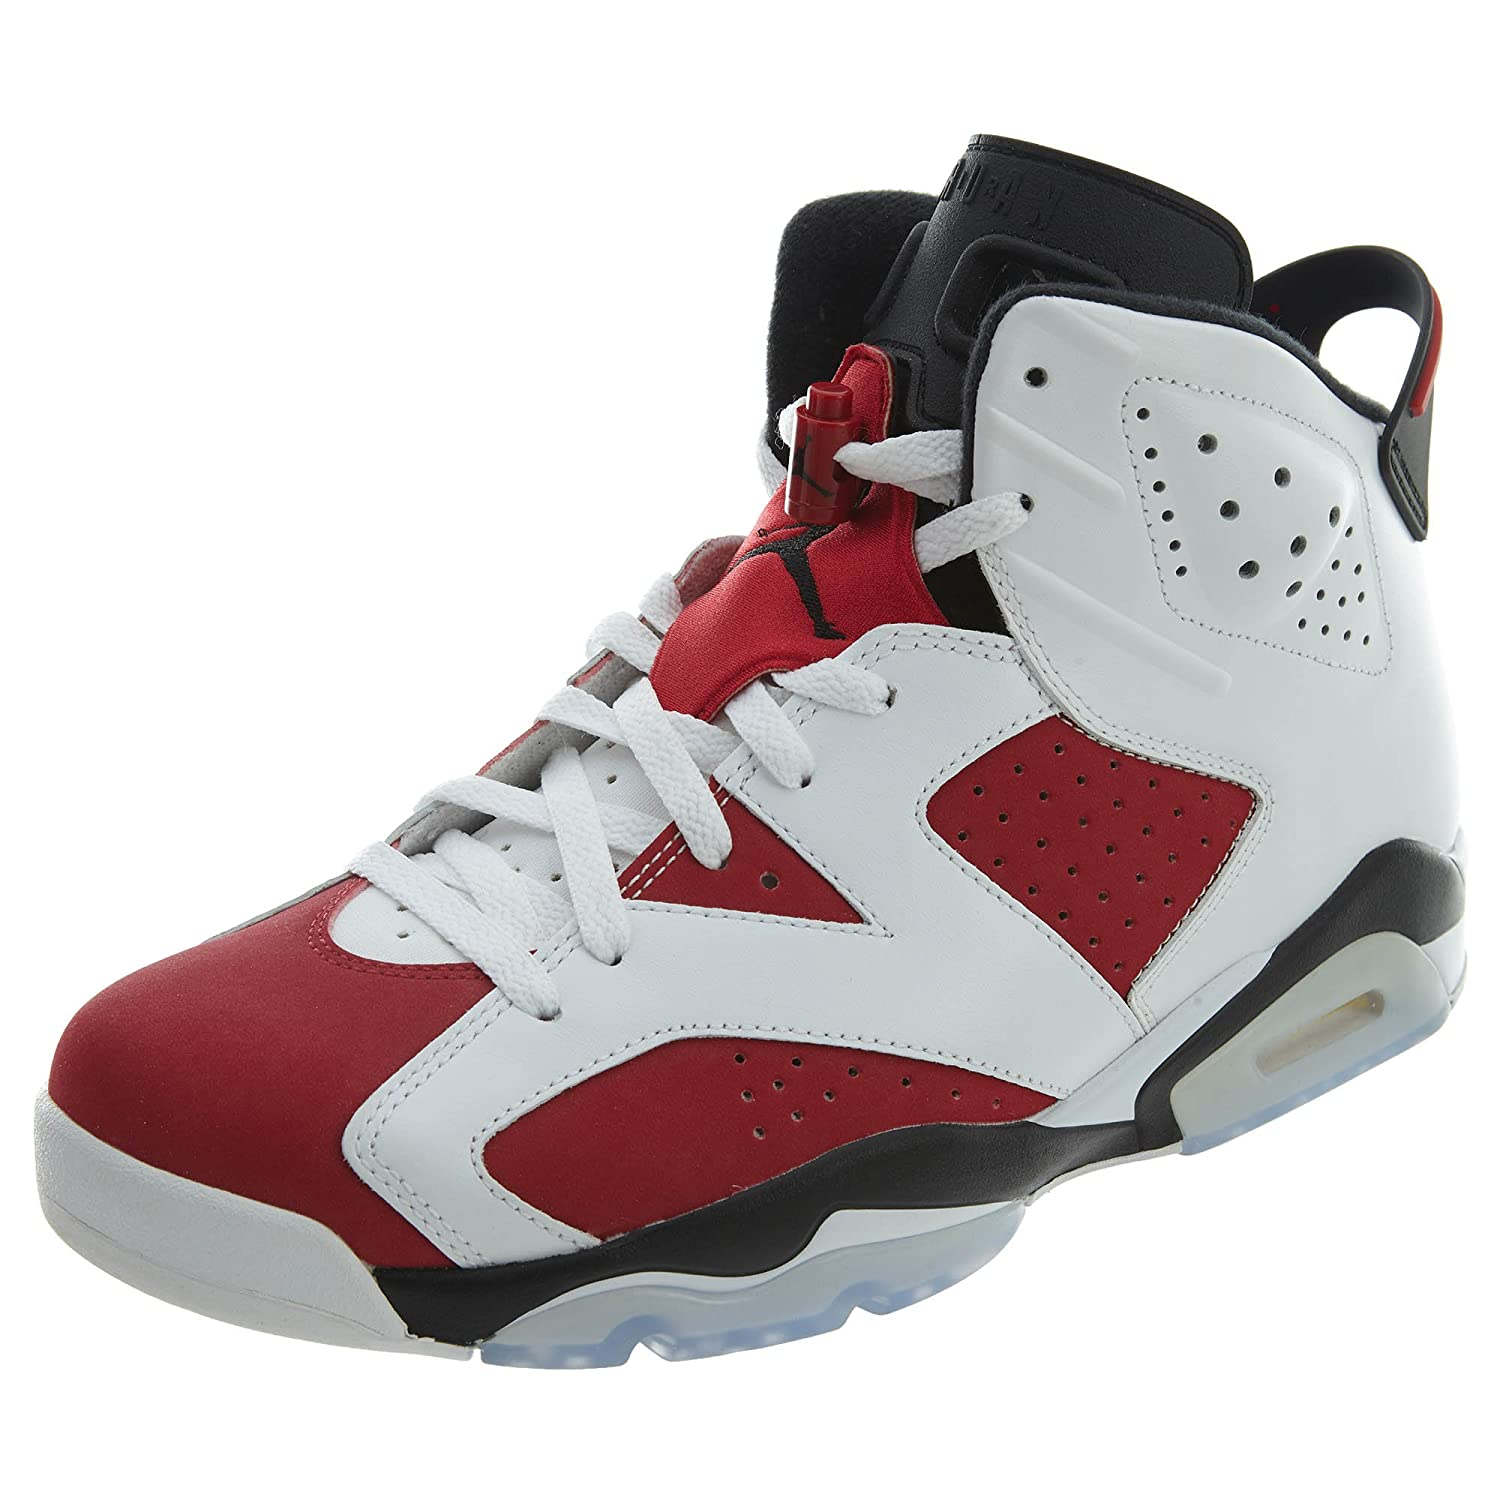 pretty nice 471a1 fd7c8 Nike Air Jordan 6 Retro, Men s Trainers